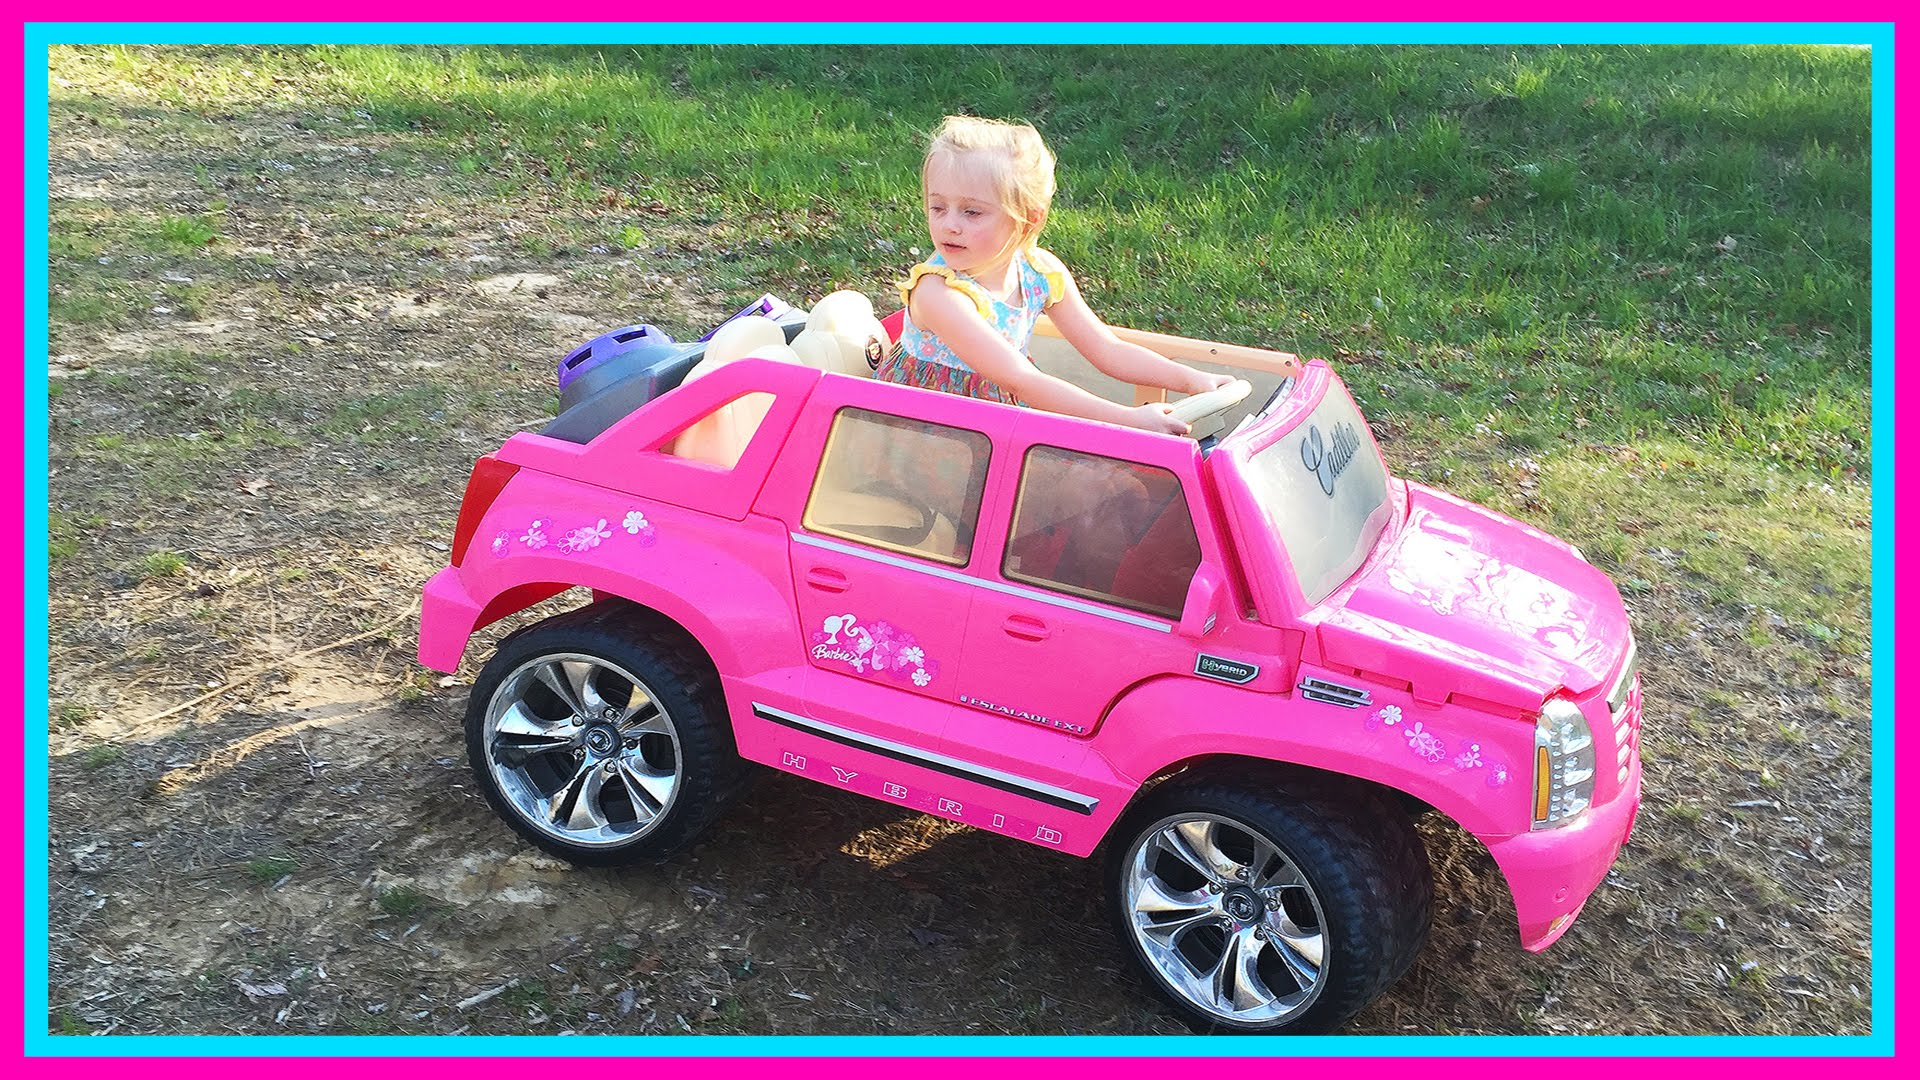 barbie power wheels ride on car step 2 roller coaster toys for kids w pink supergirl superhero youtube